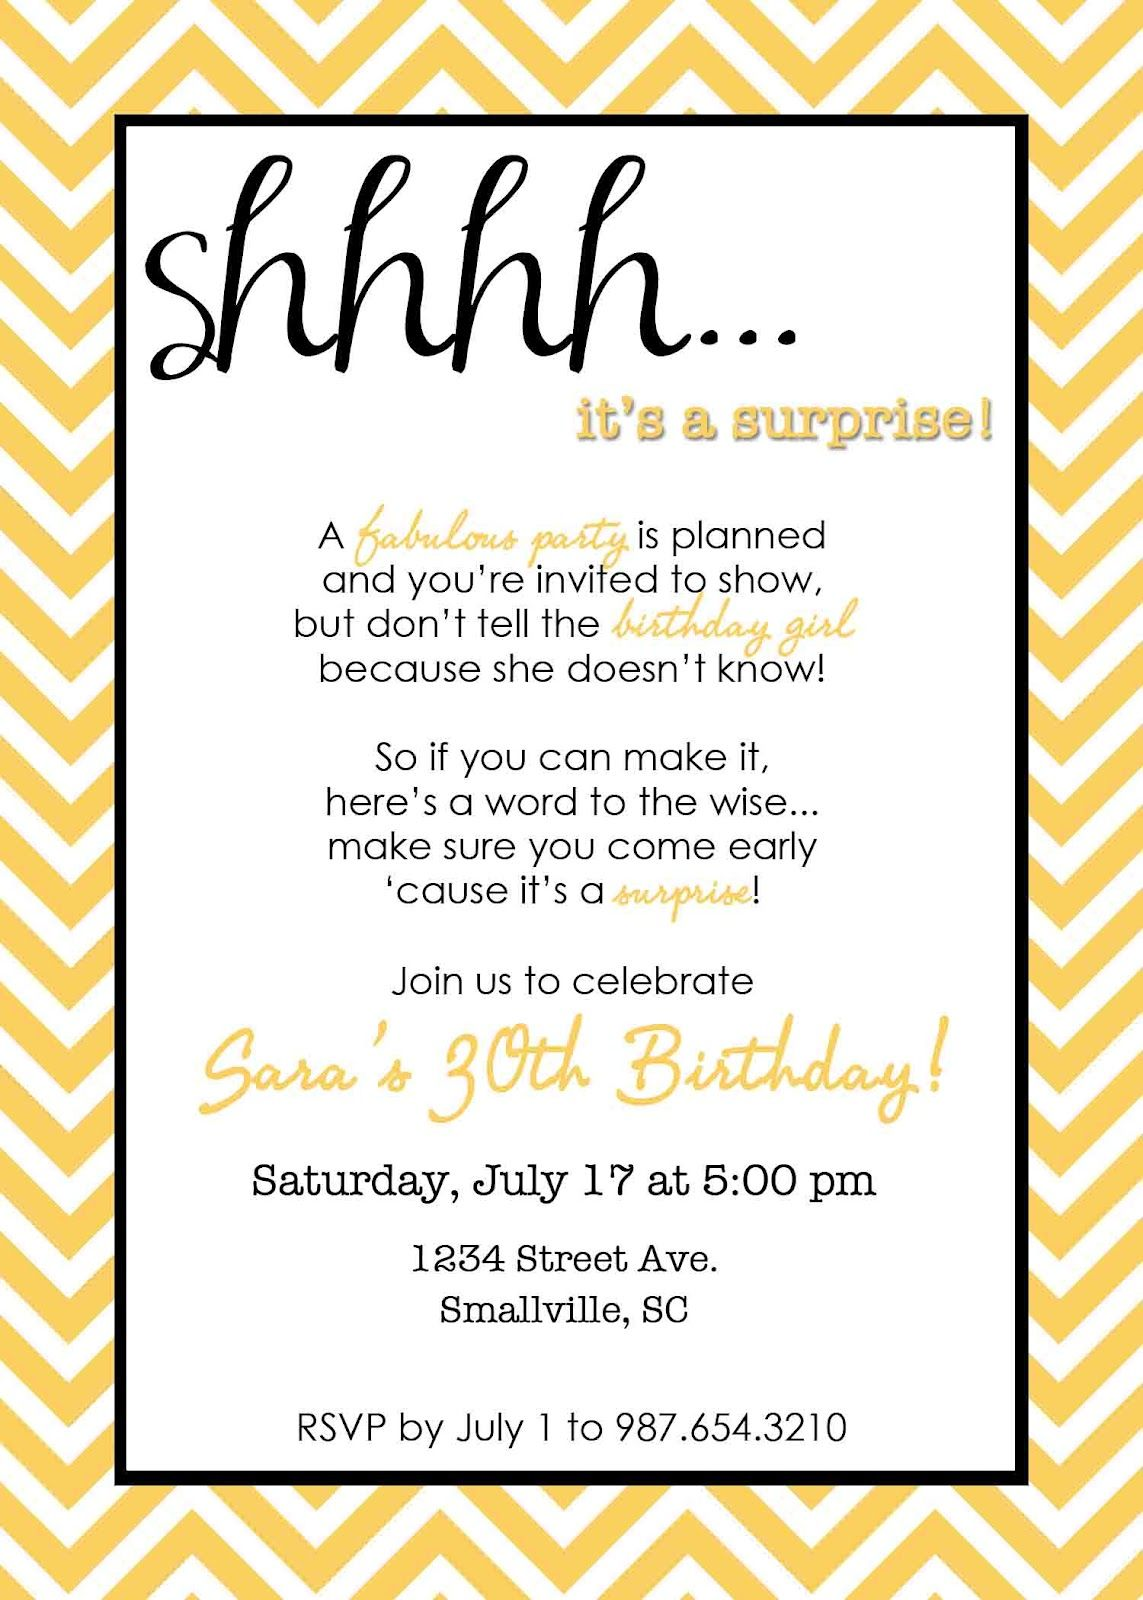 Surprise 60th birthday party invitation wording ideas-1 | 60th ...